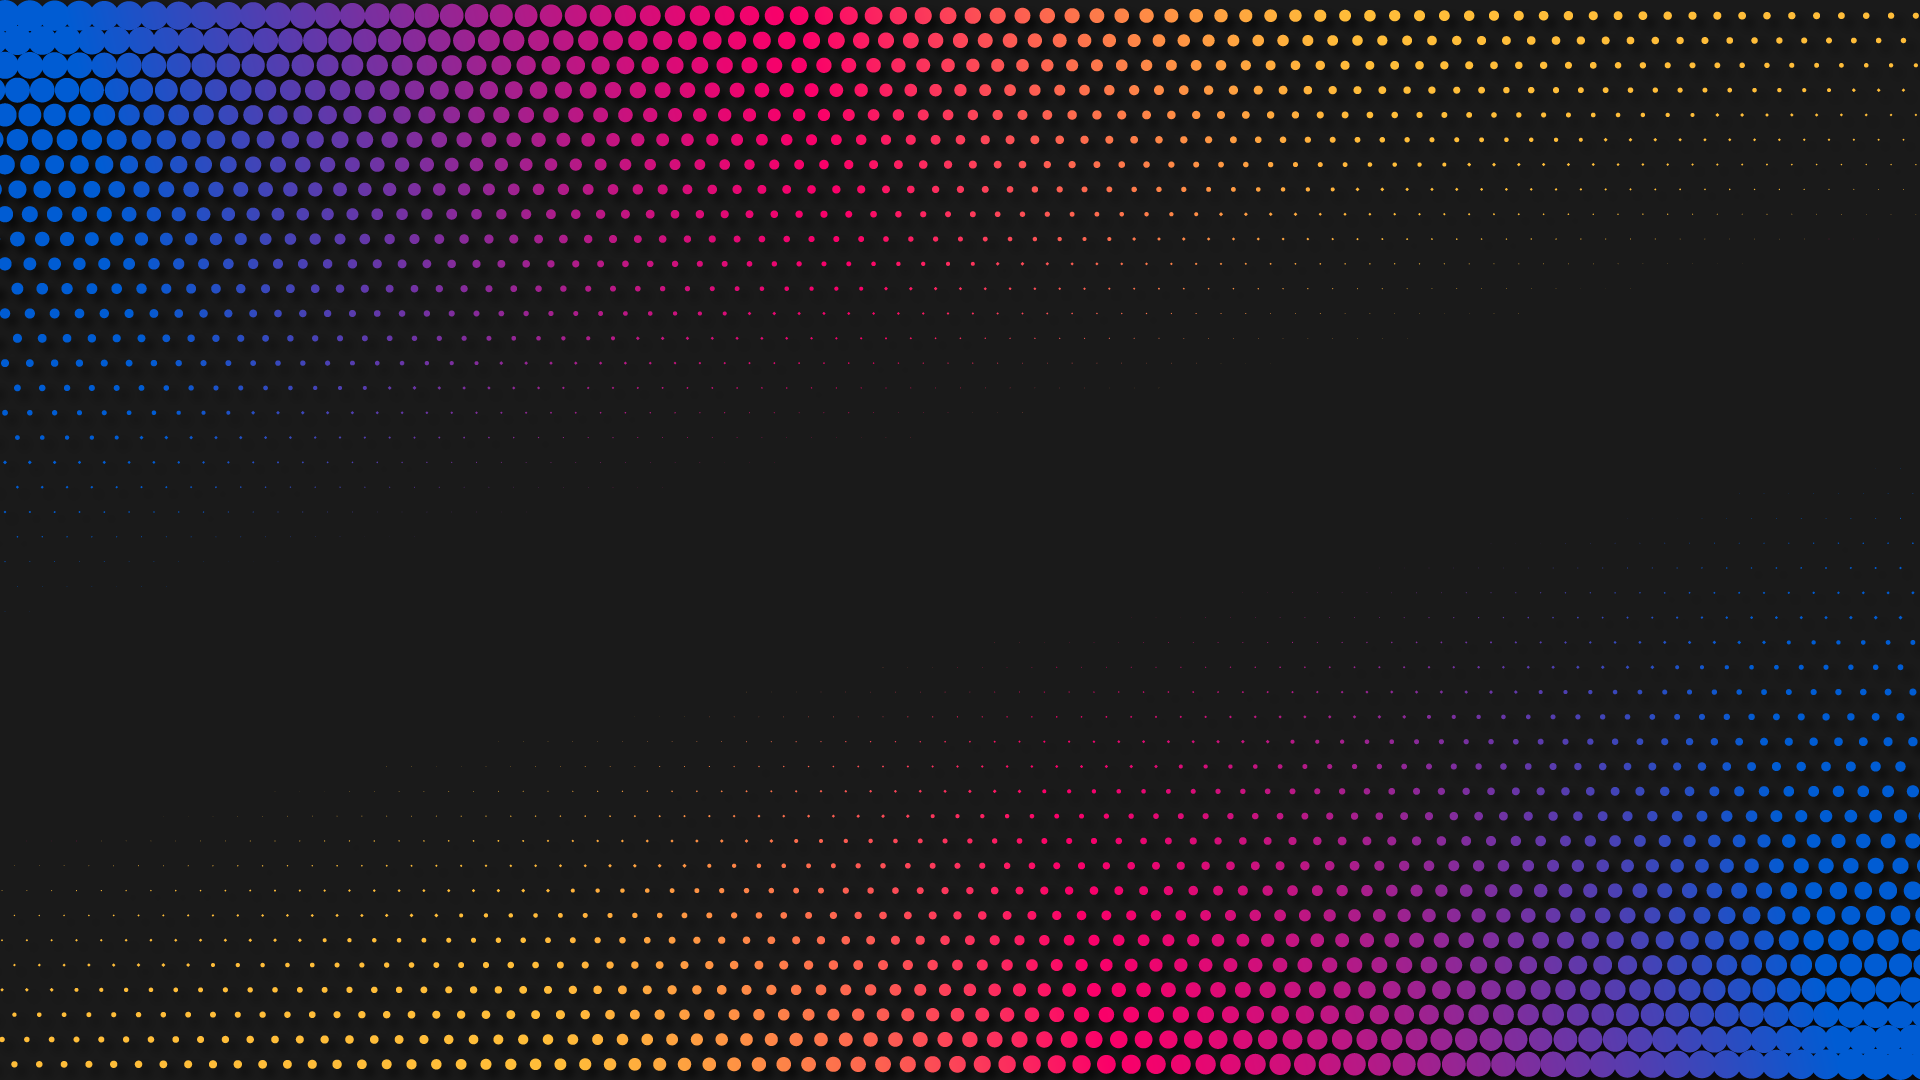 background for pc gamer setup style dots gradient ultra high resolution uncompressed